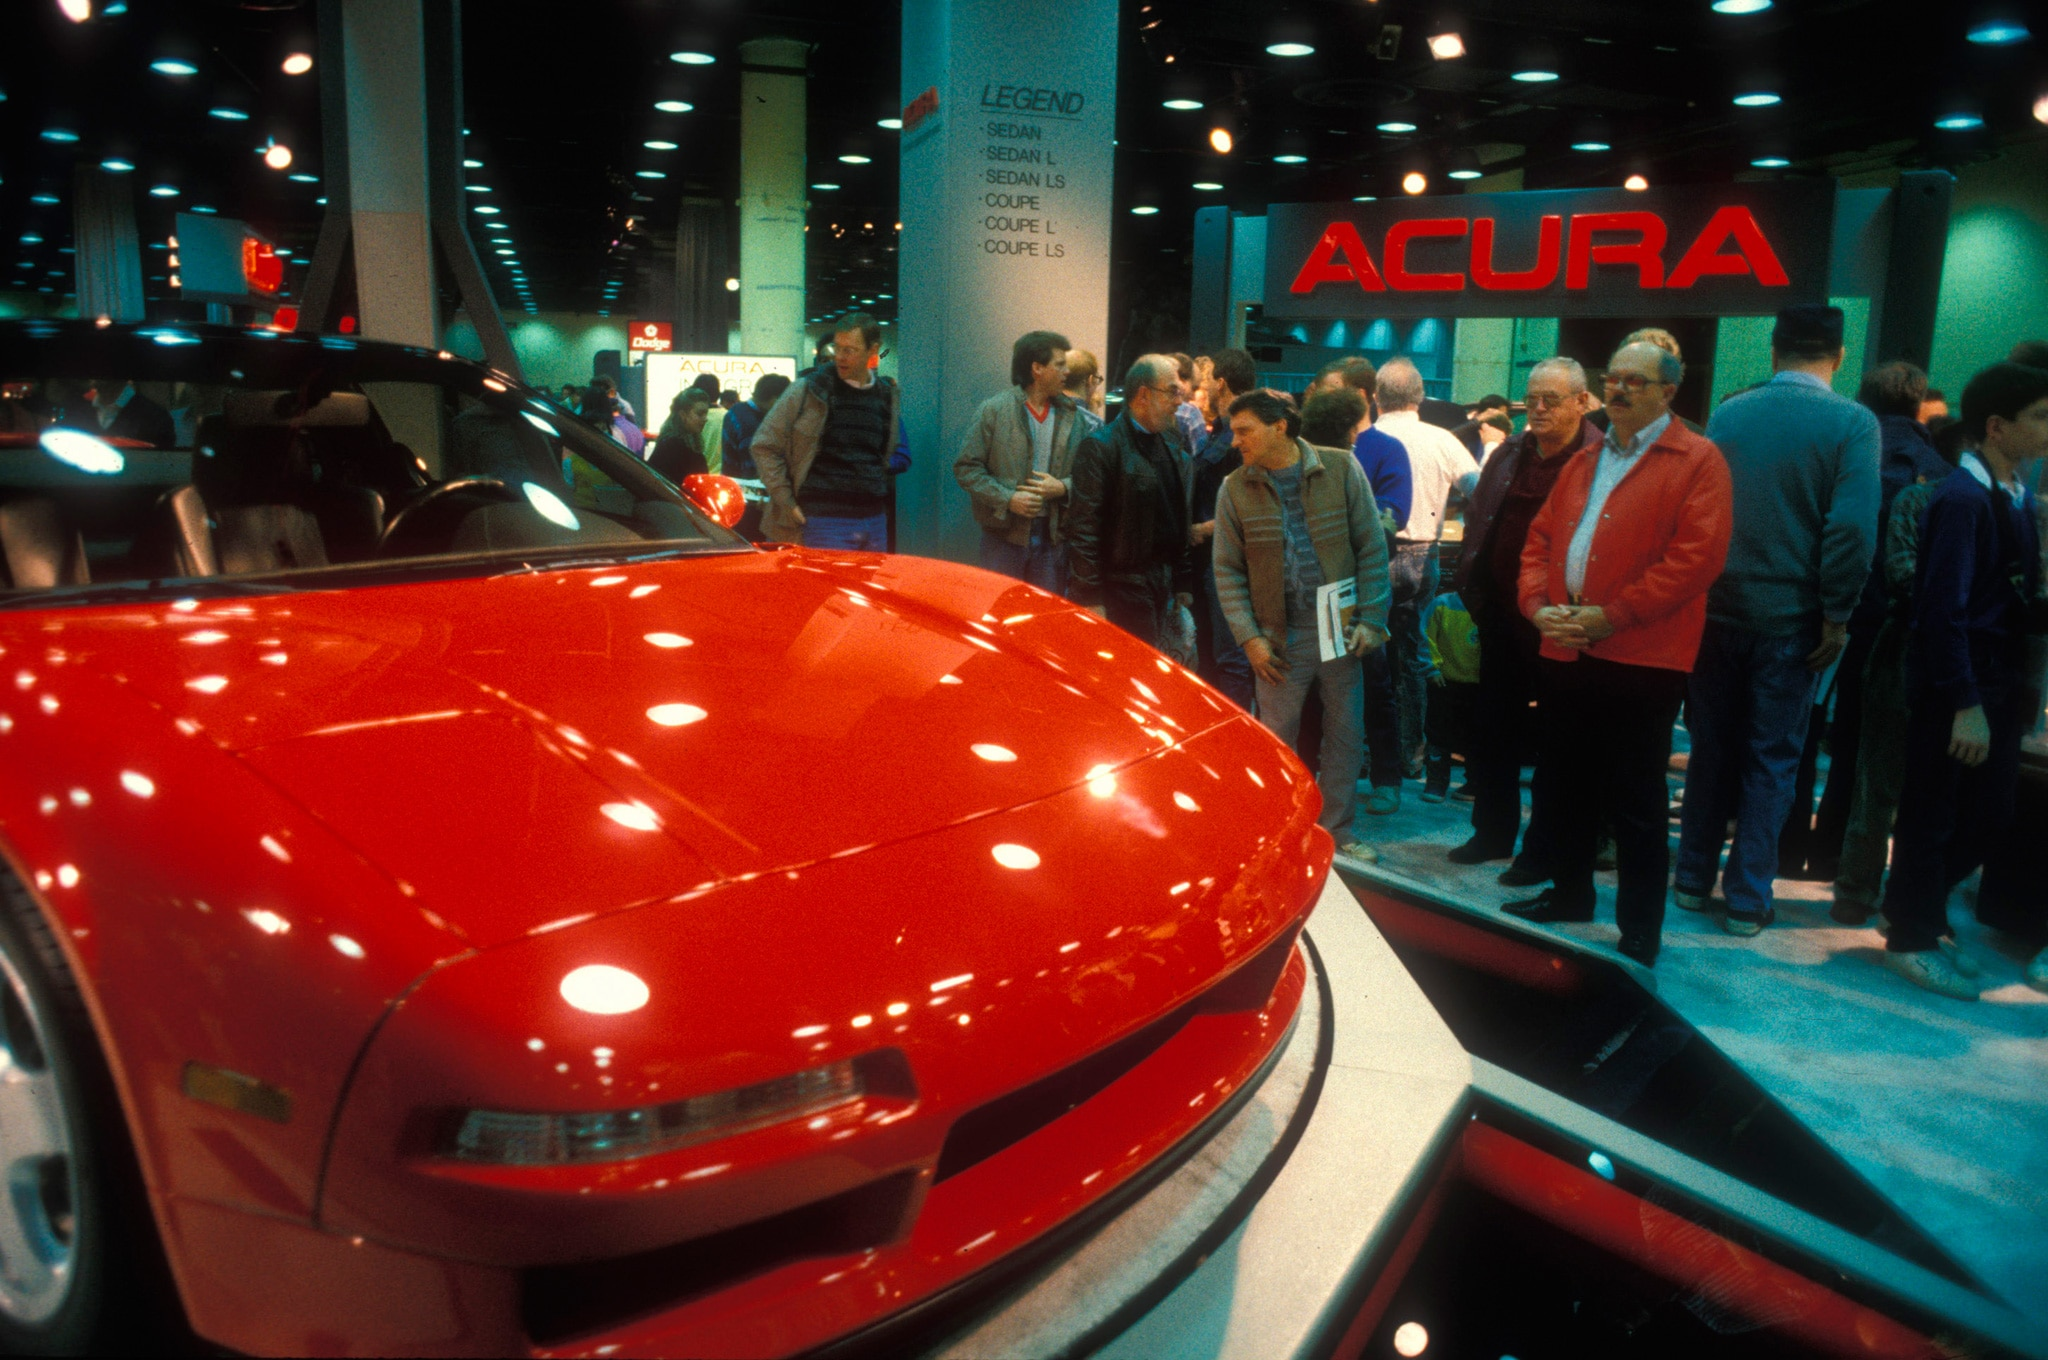 1989 Acura NSX Prototype During Chicago Auto Show Public Days1